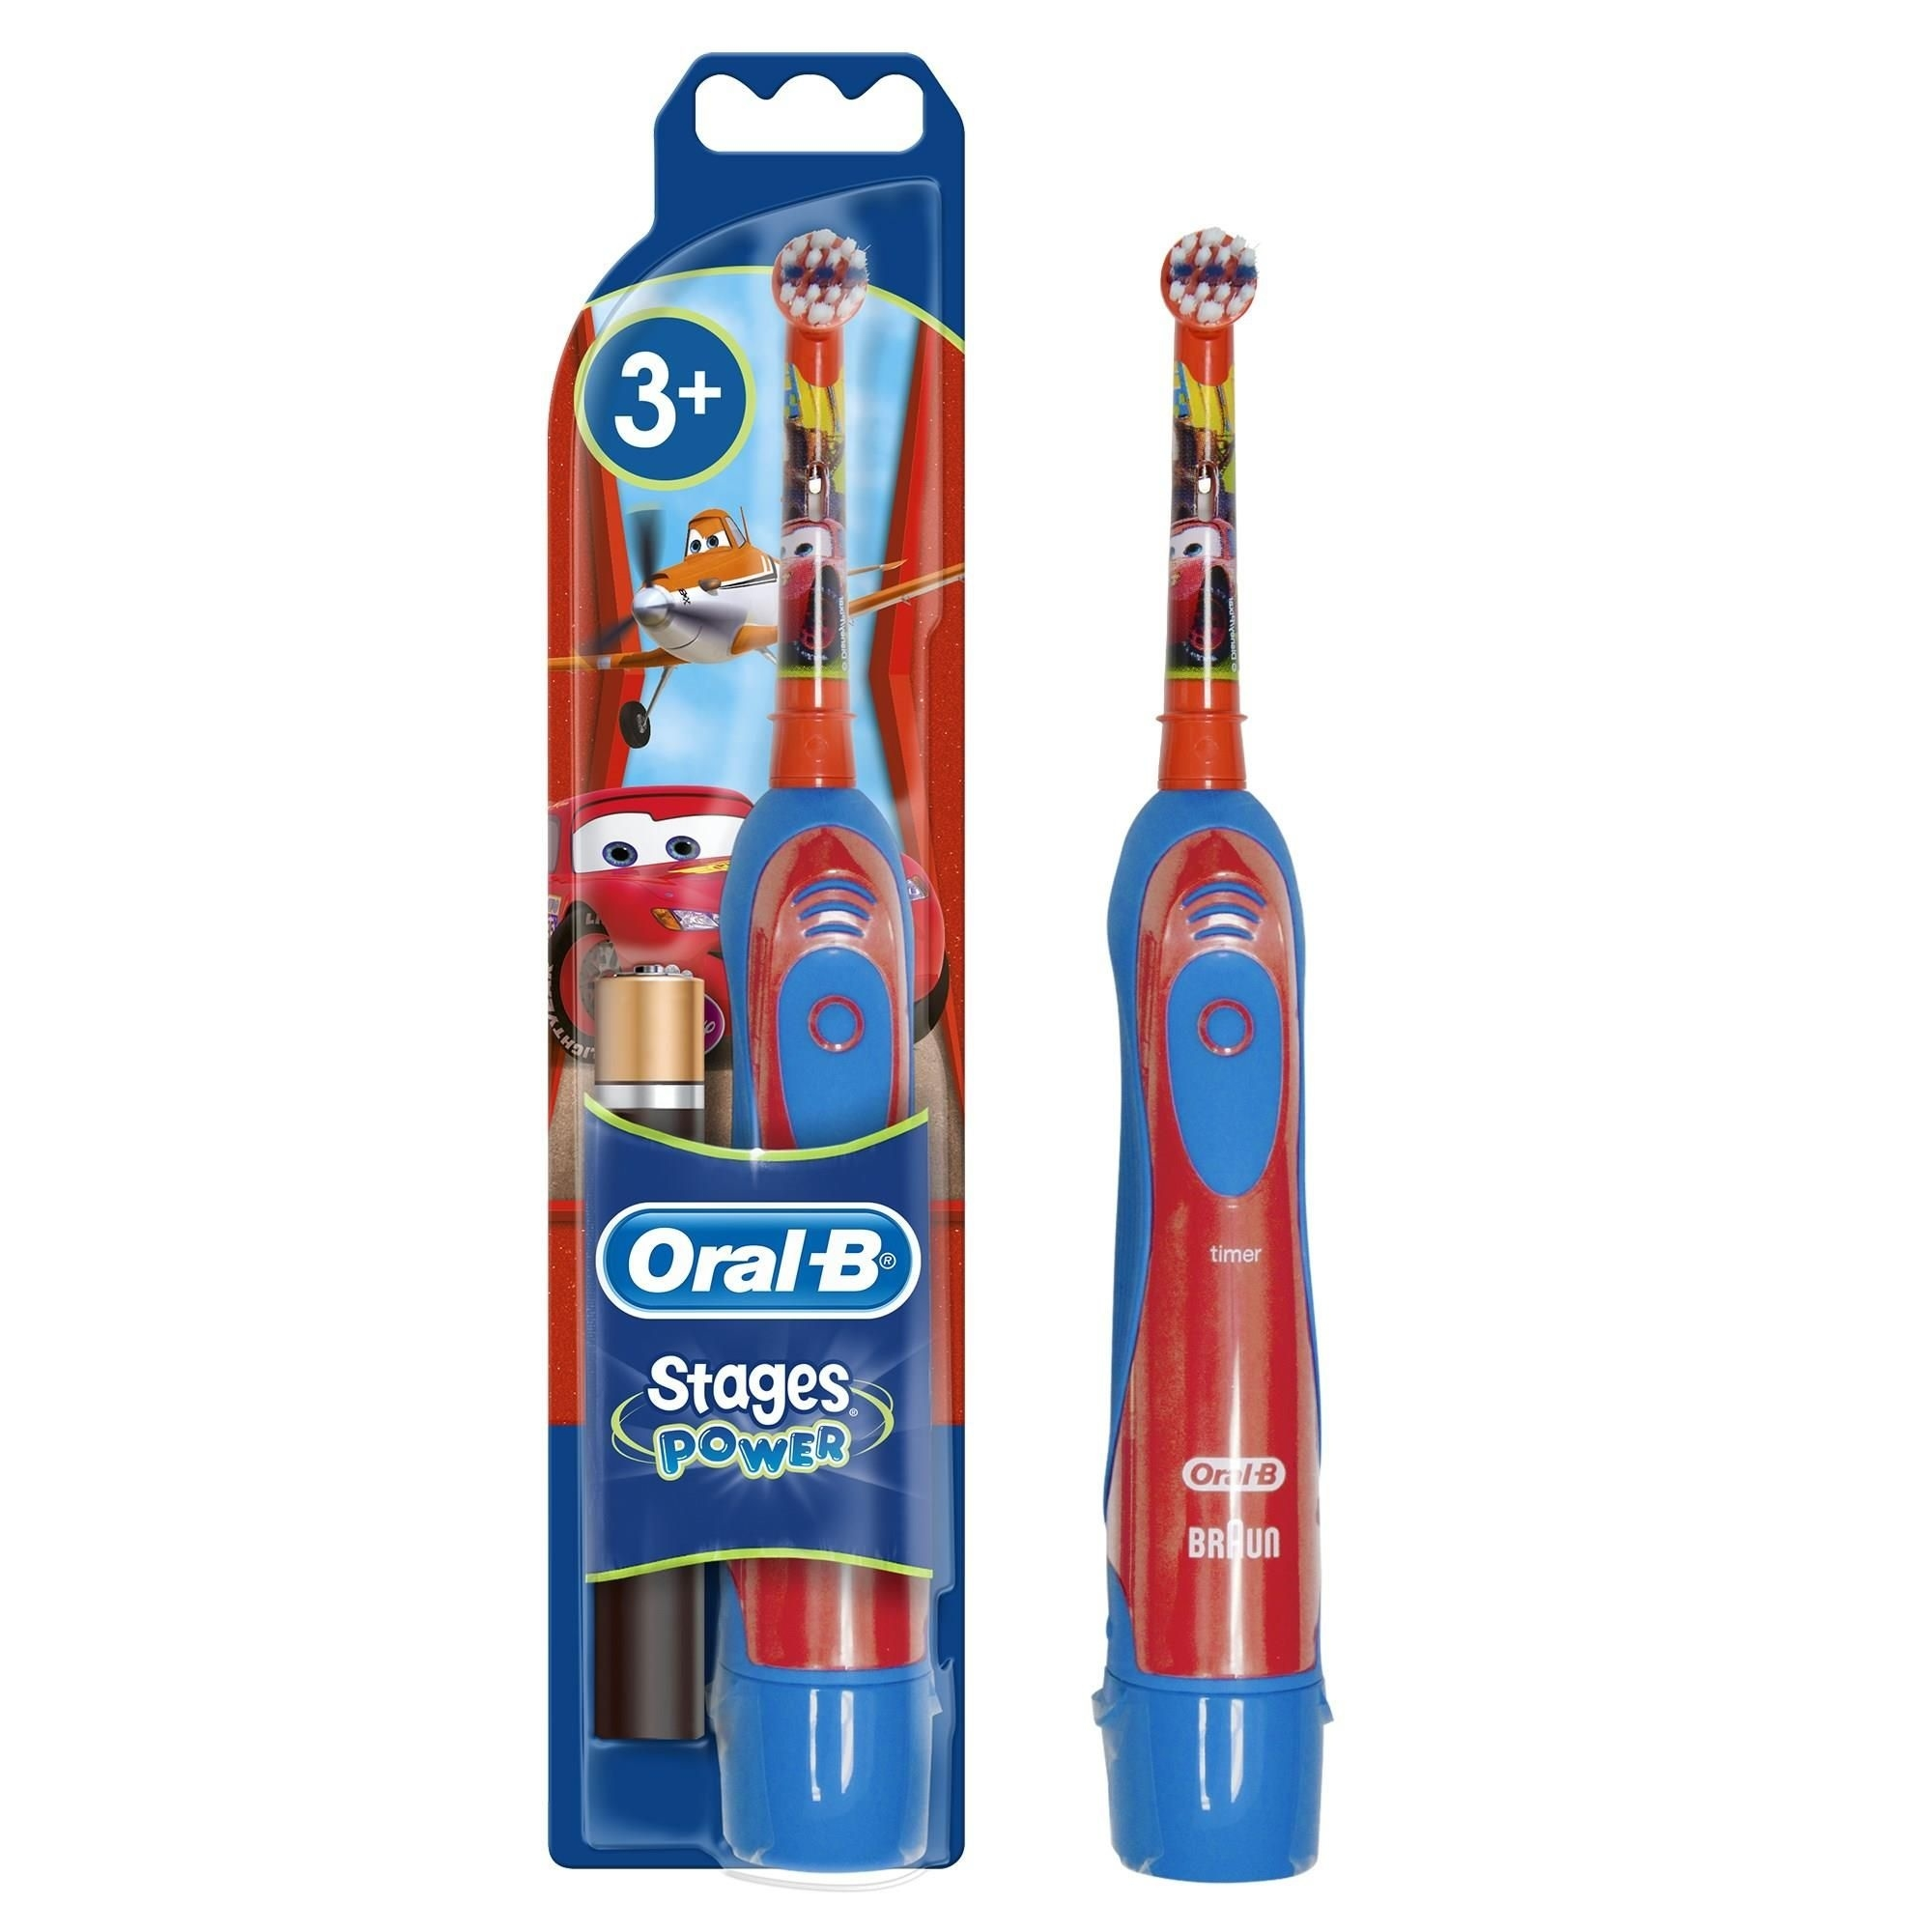 stages power oralb